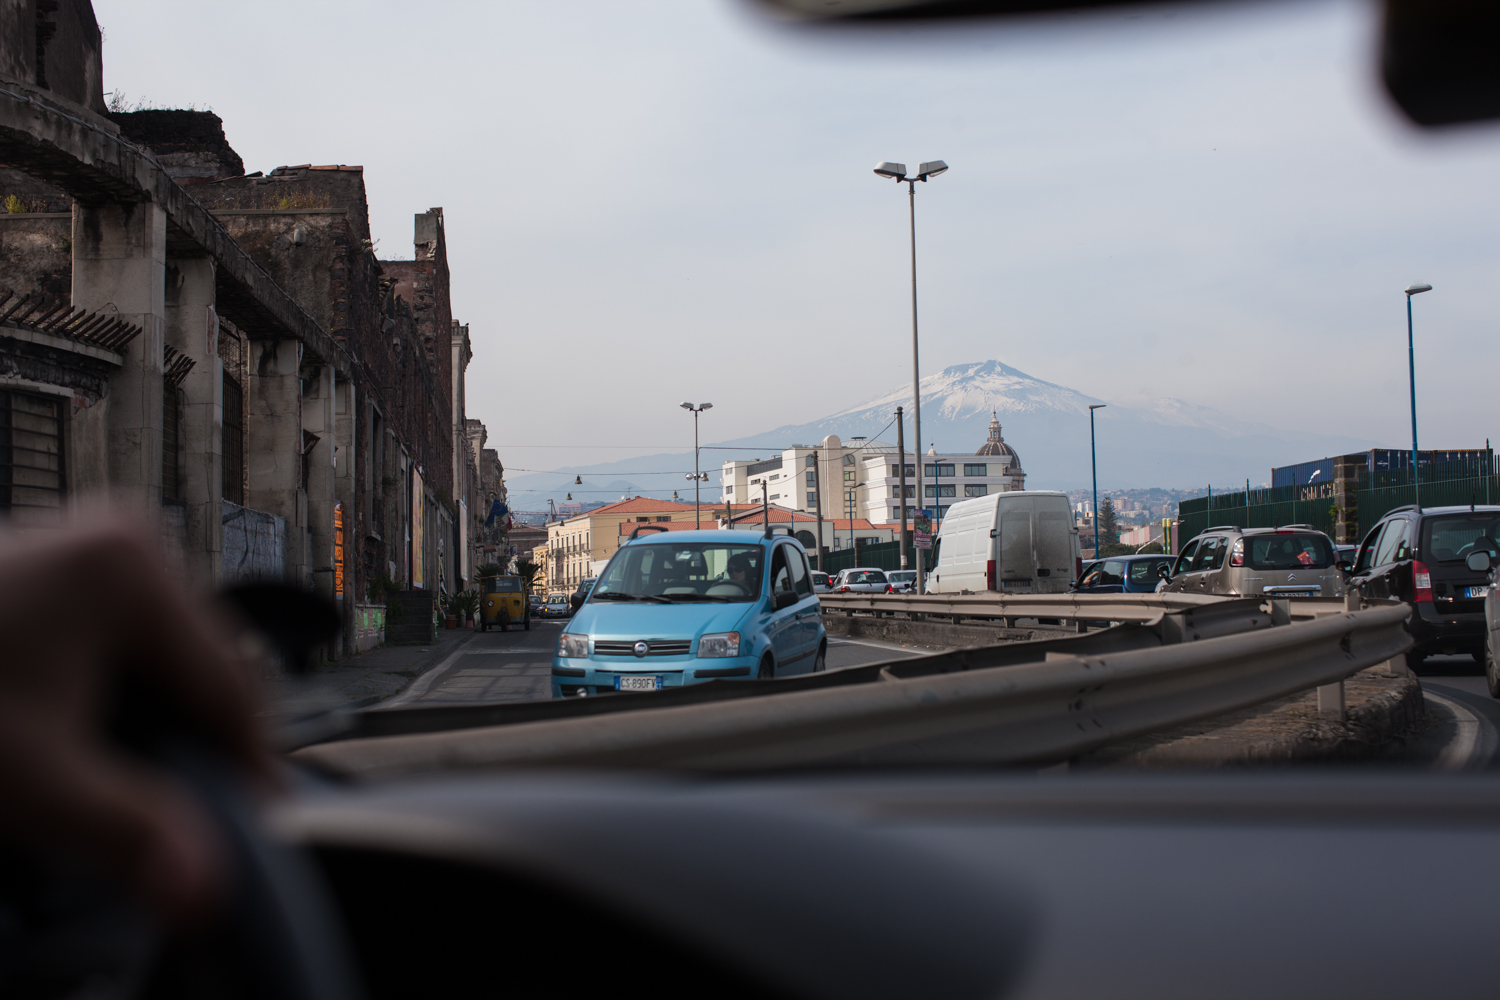 Mount Etna and roadway